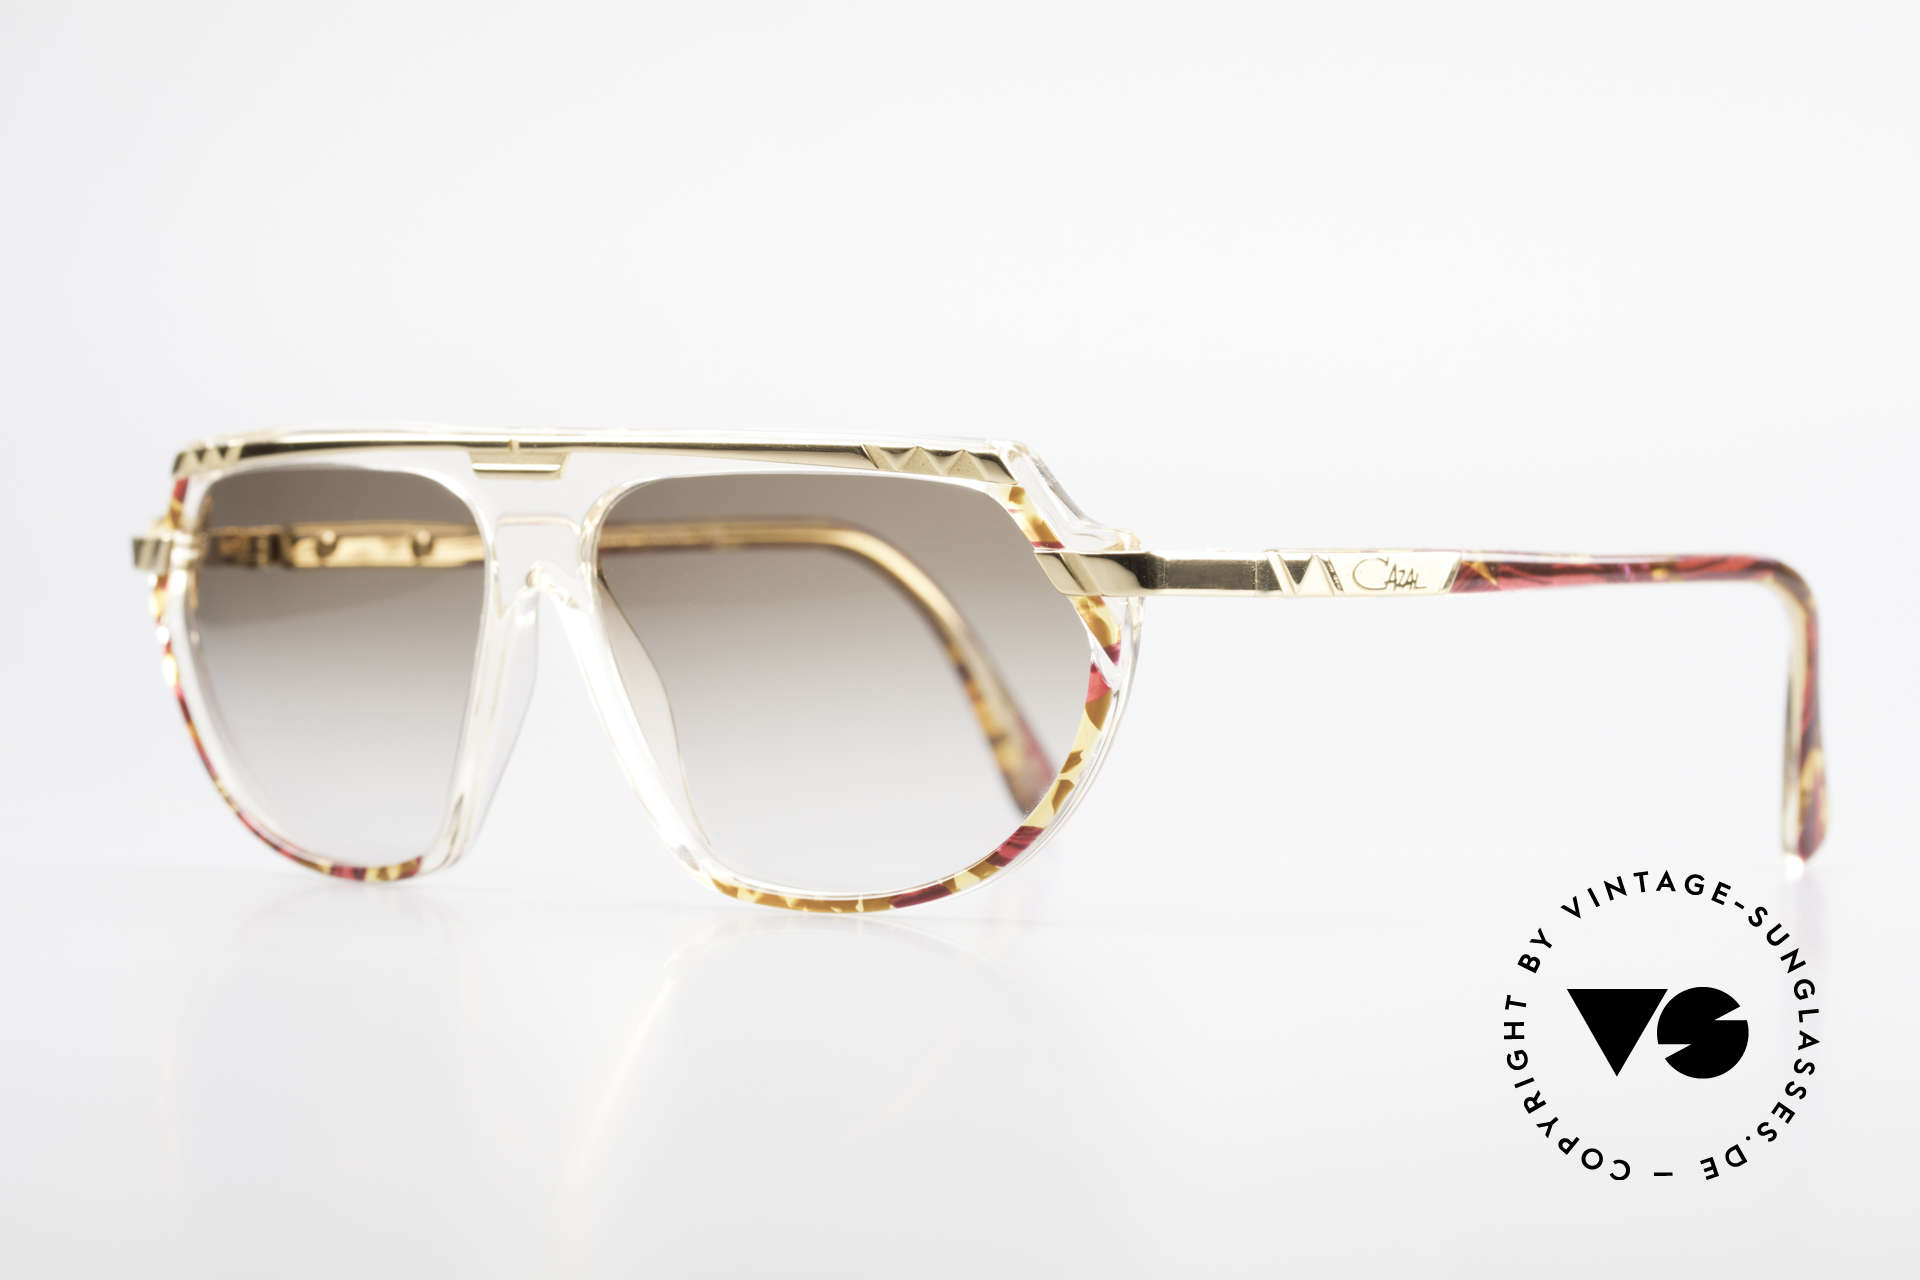 Cazal 344 Old School Crystal Sunglasses, decorated with colors, pattern and small appliqué, Made for Women